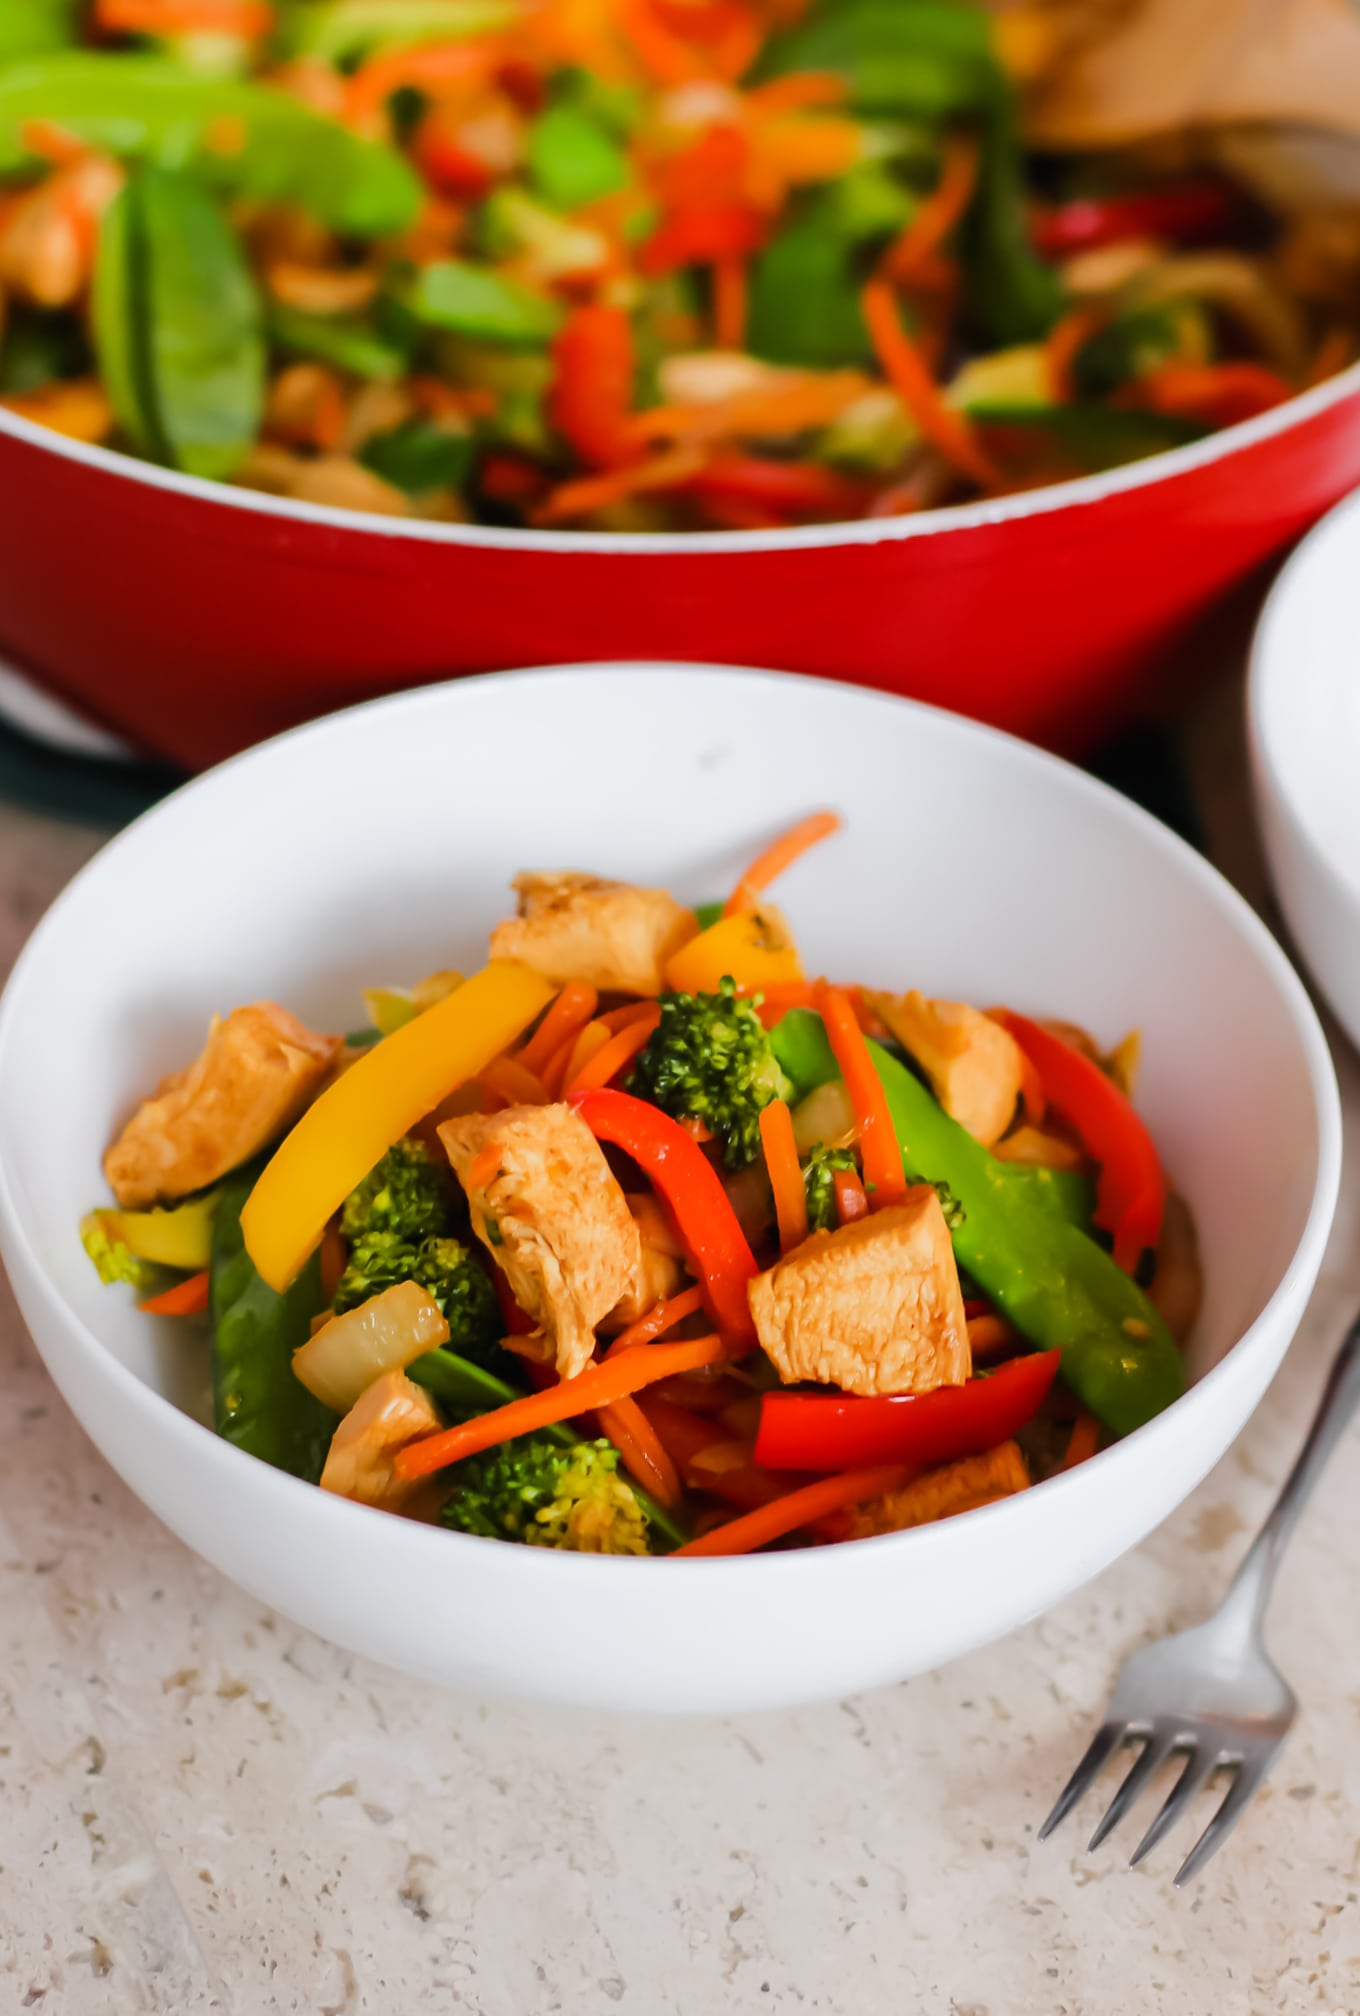 My Go-To Stir Fry Recipe: Chicken, Veggie Stir Fry